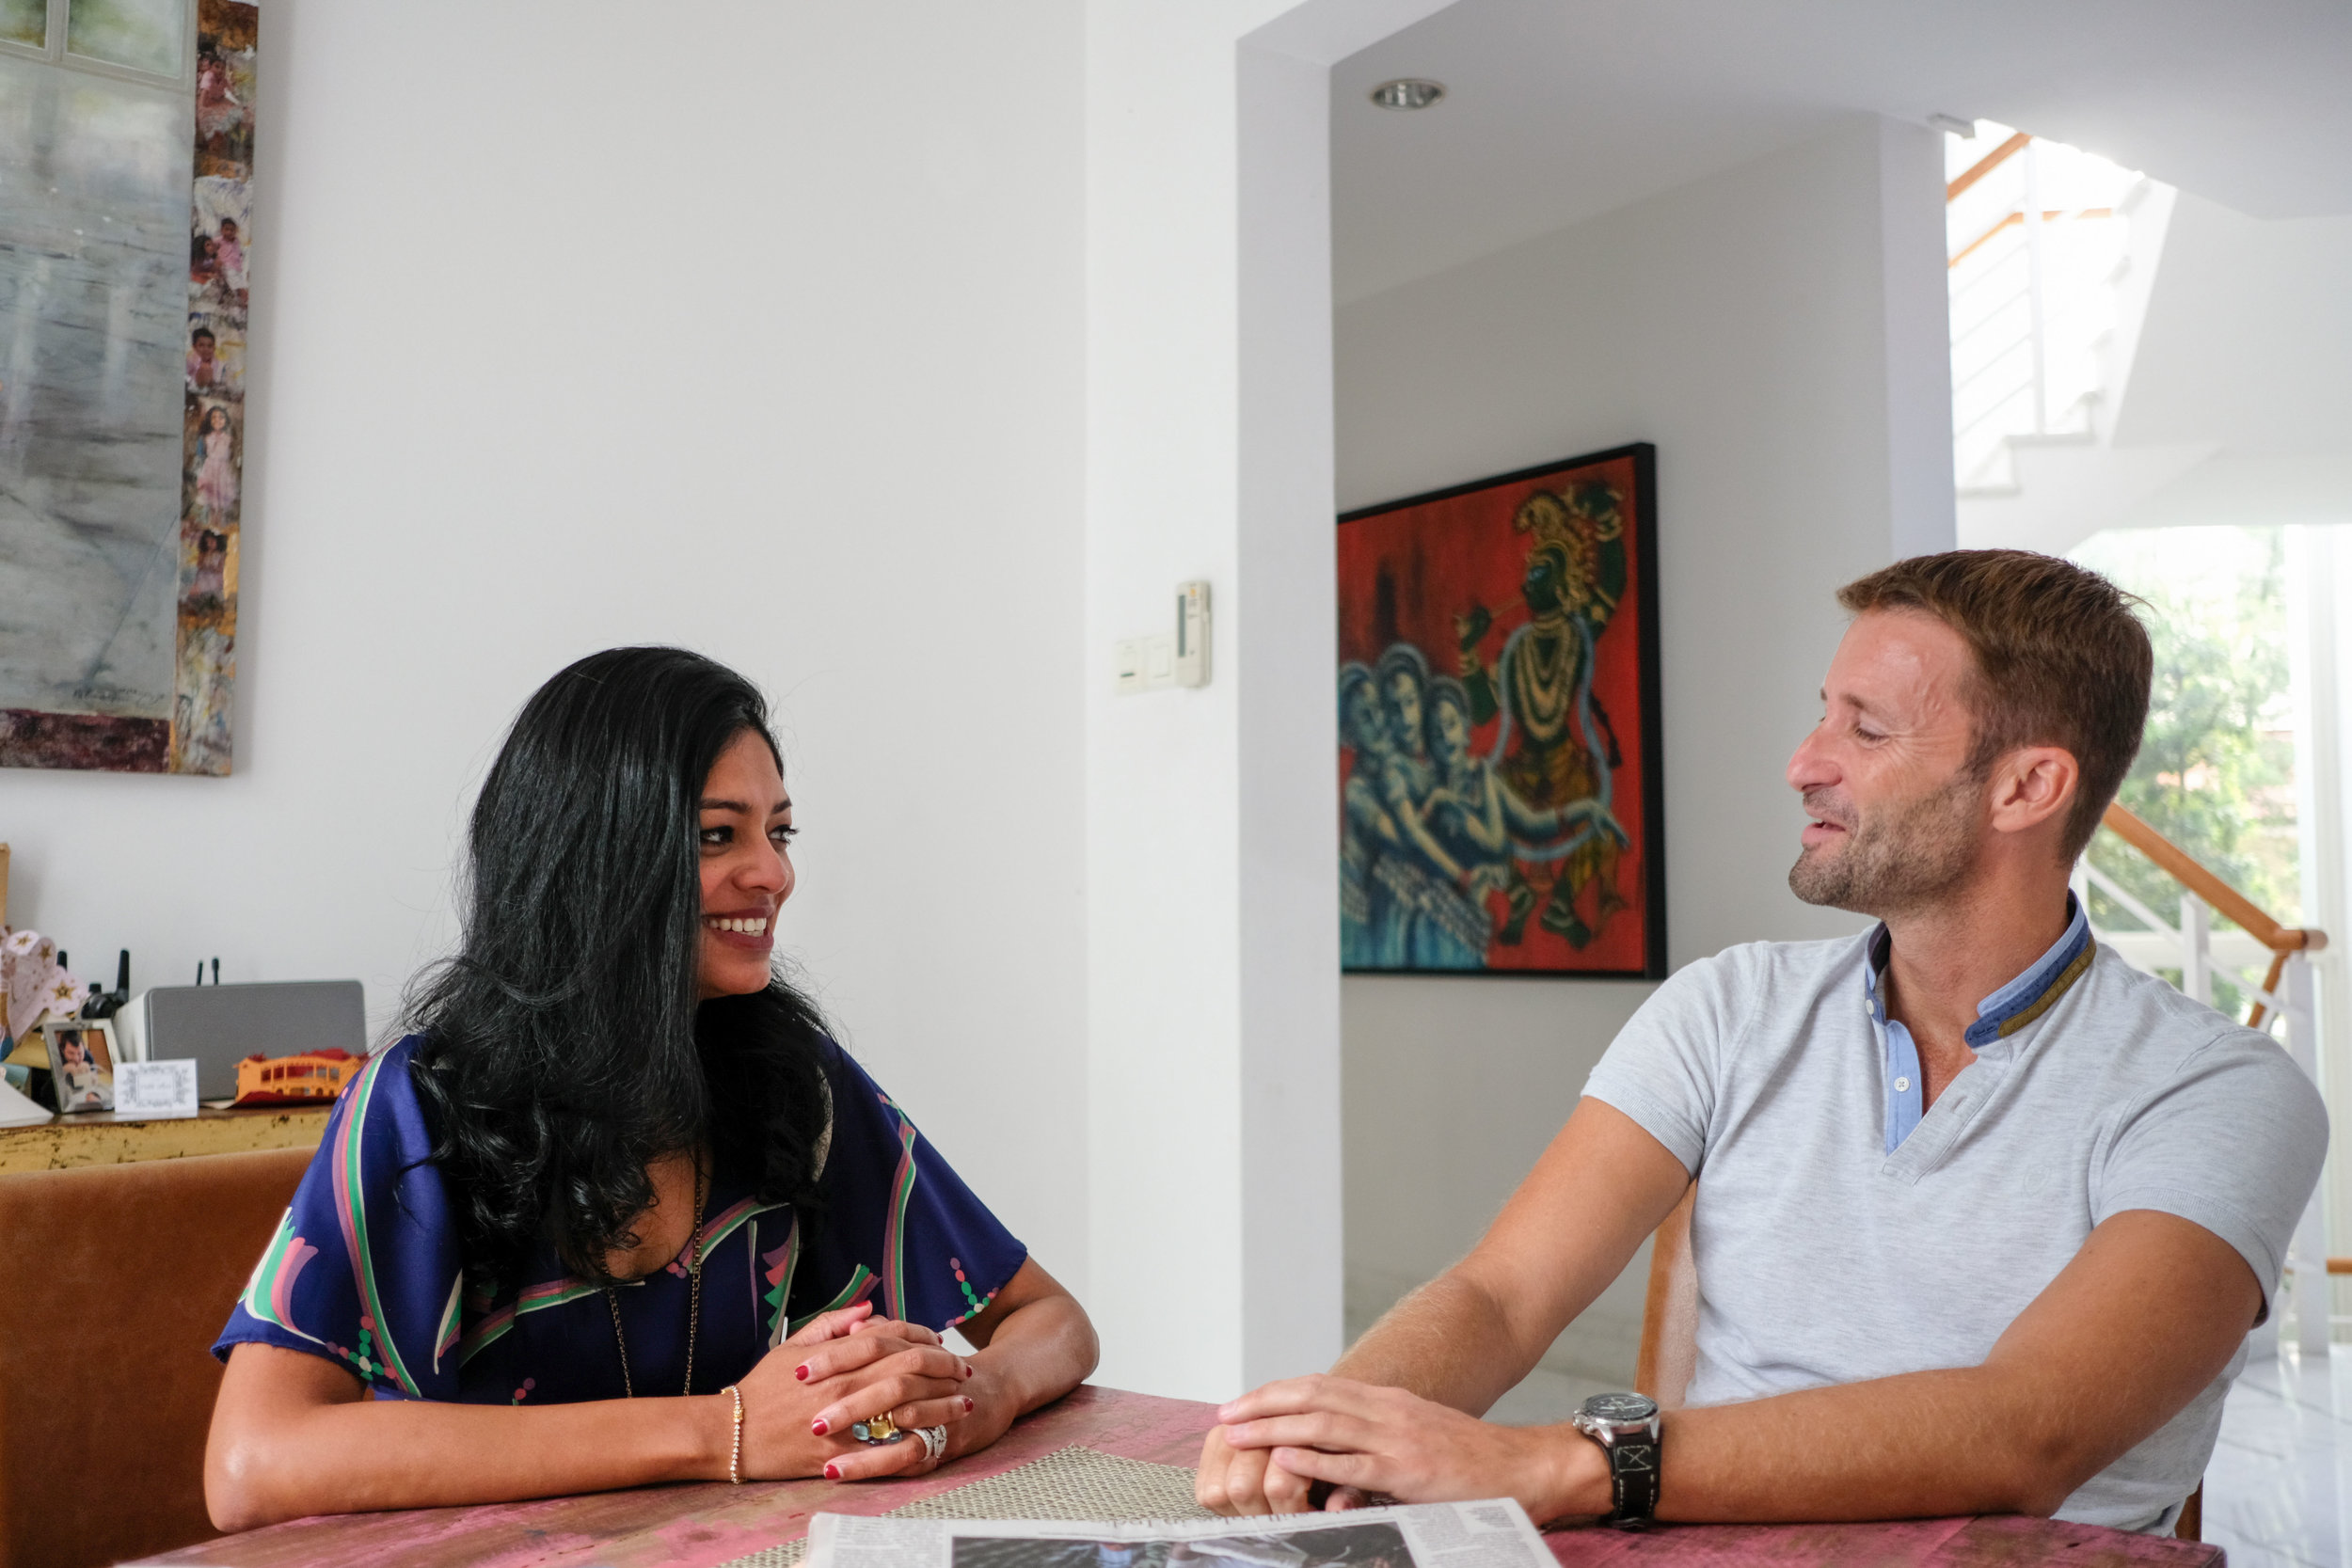 Gayathri Santhi-McBain and João Marçal-Grilo planning the next phase of their outreach.  Photo by Mackerel.